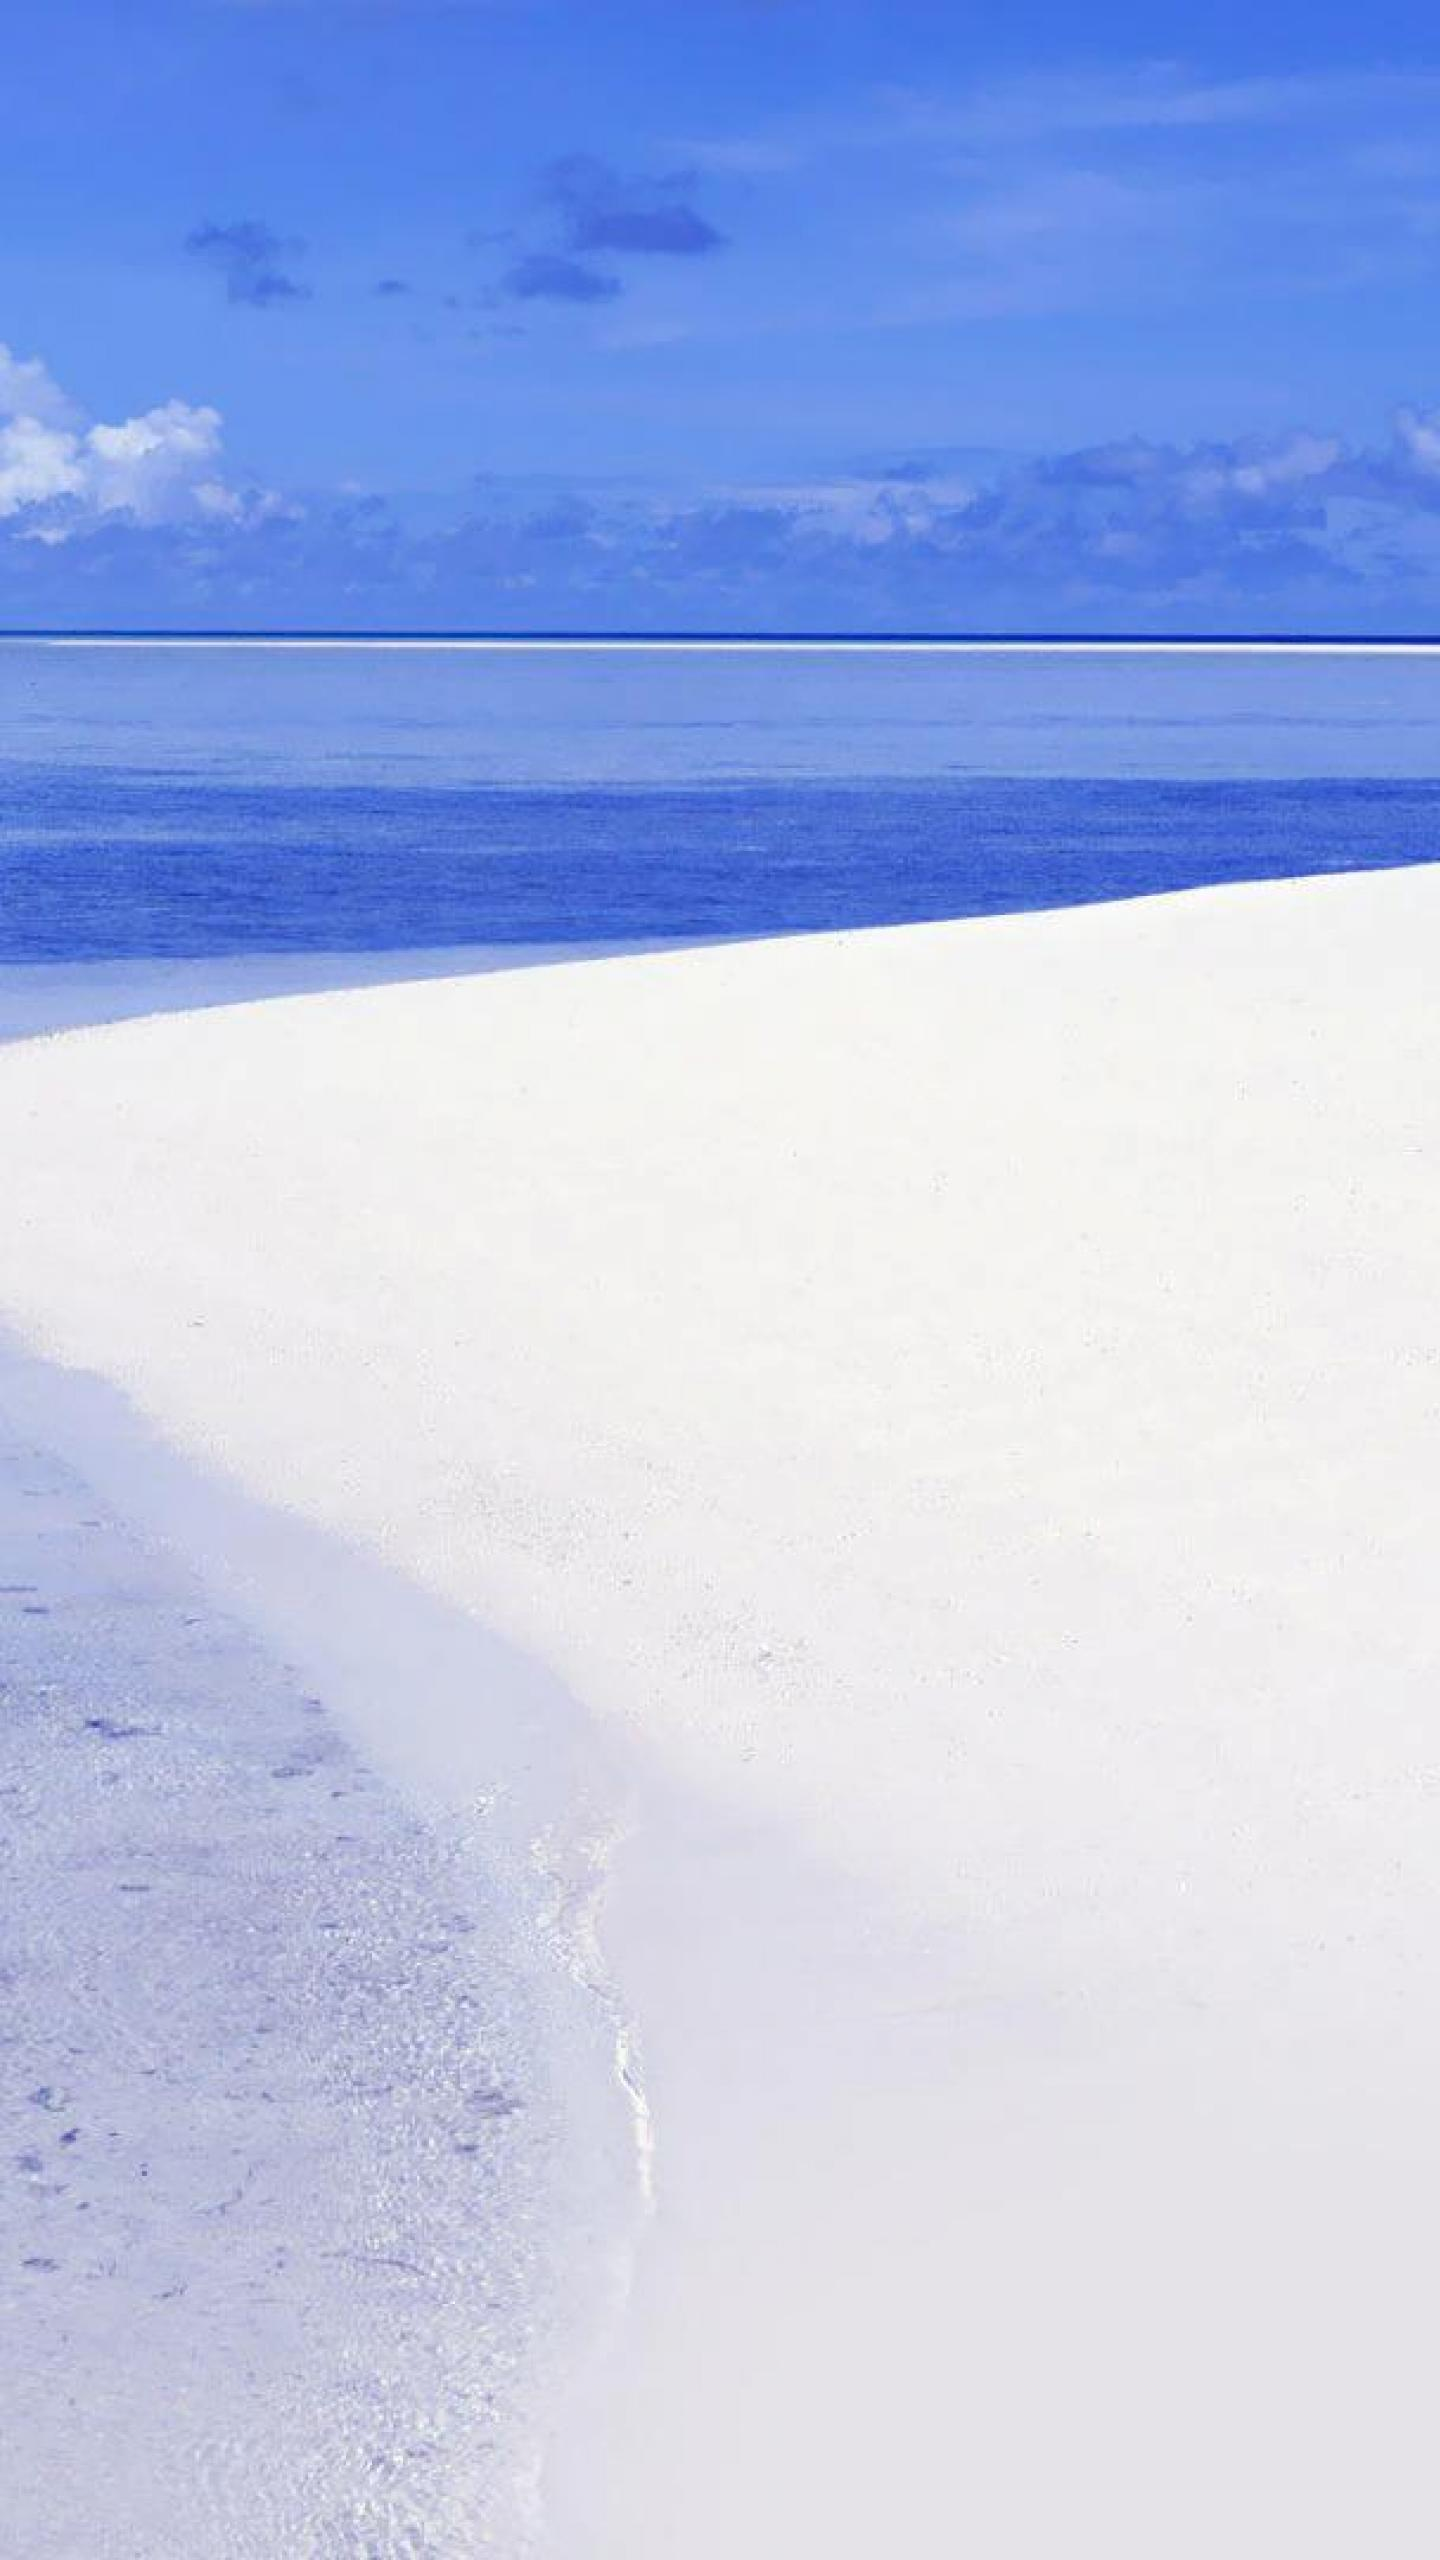 Free Download Beaches White Sandy Beach Sand Beach Sea Hd Wallpapers 1440x2560 For Your Desktop Mobile Tablet Explore 69 White Sand Beach Wallpaper White Sands Wallpaper Sandy Beach Wallpaper